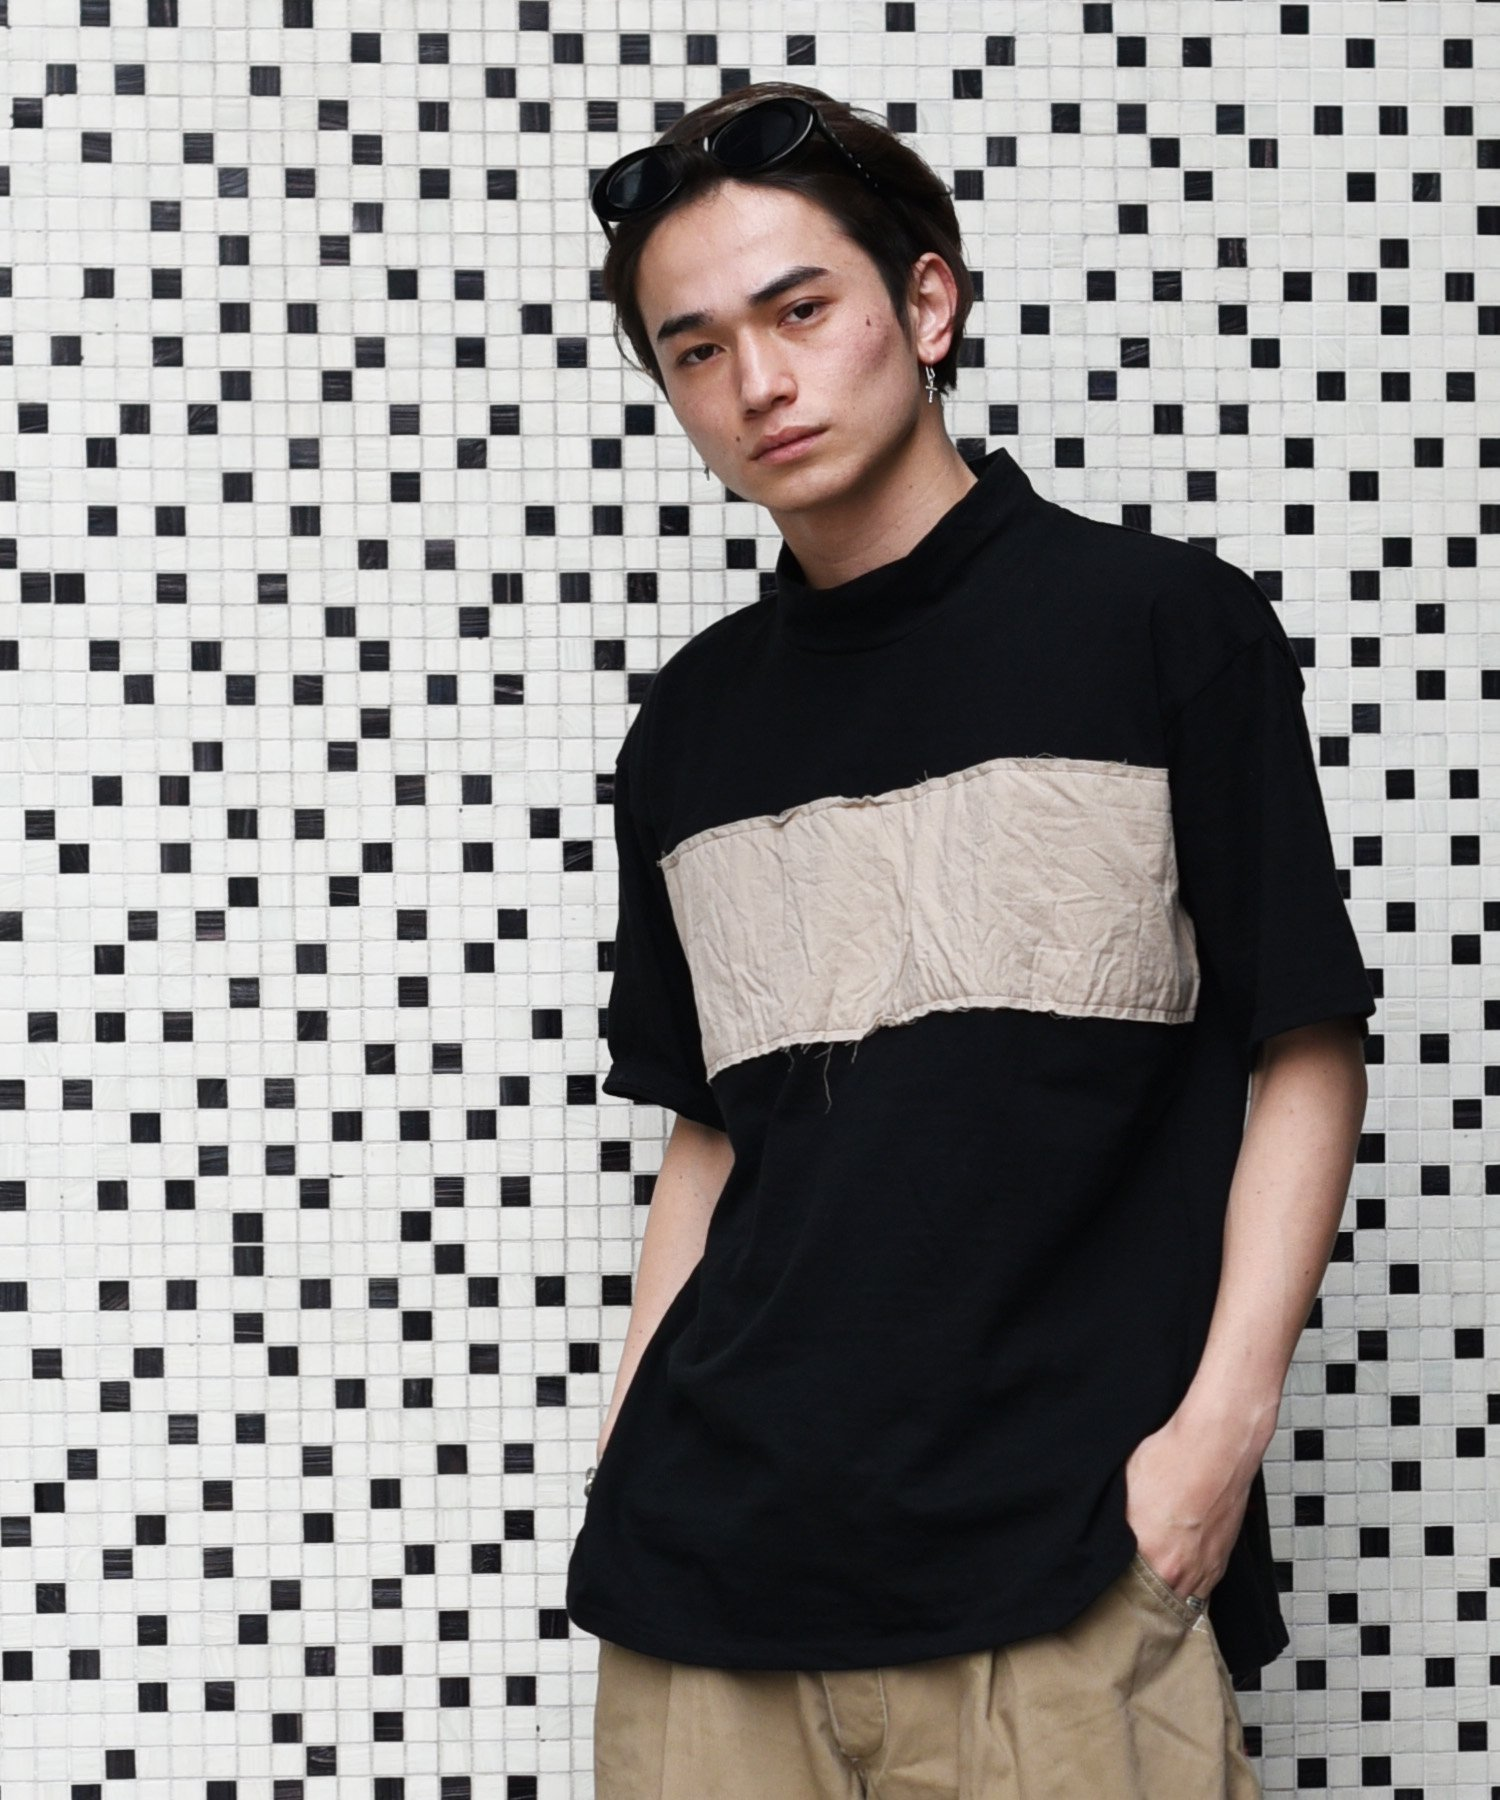 【SUMMER_CLEARANCE】Burnout〔バーンアウト〕 『21' early summer collection』 モックネックワイドTシャツ(Black/Beige)